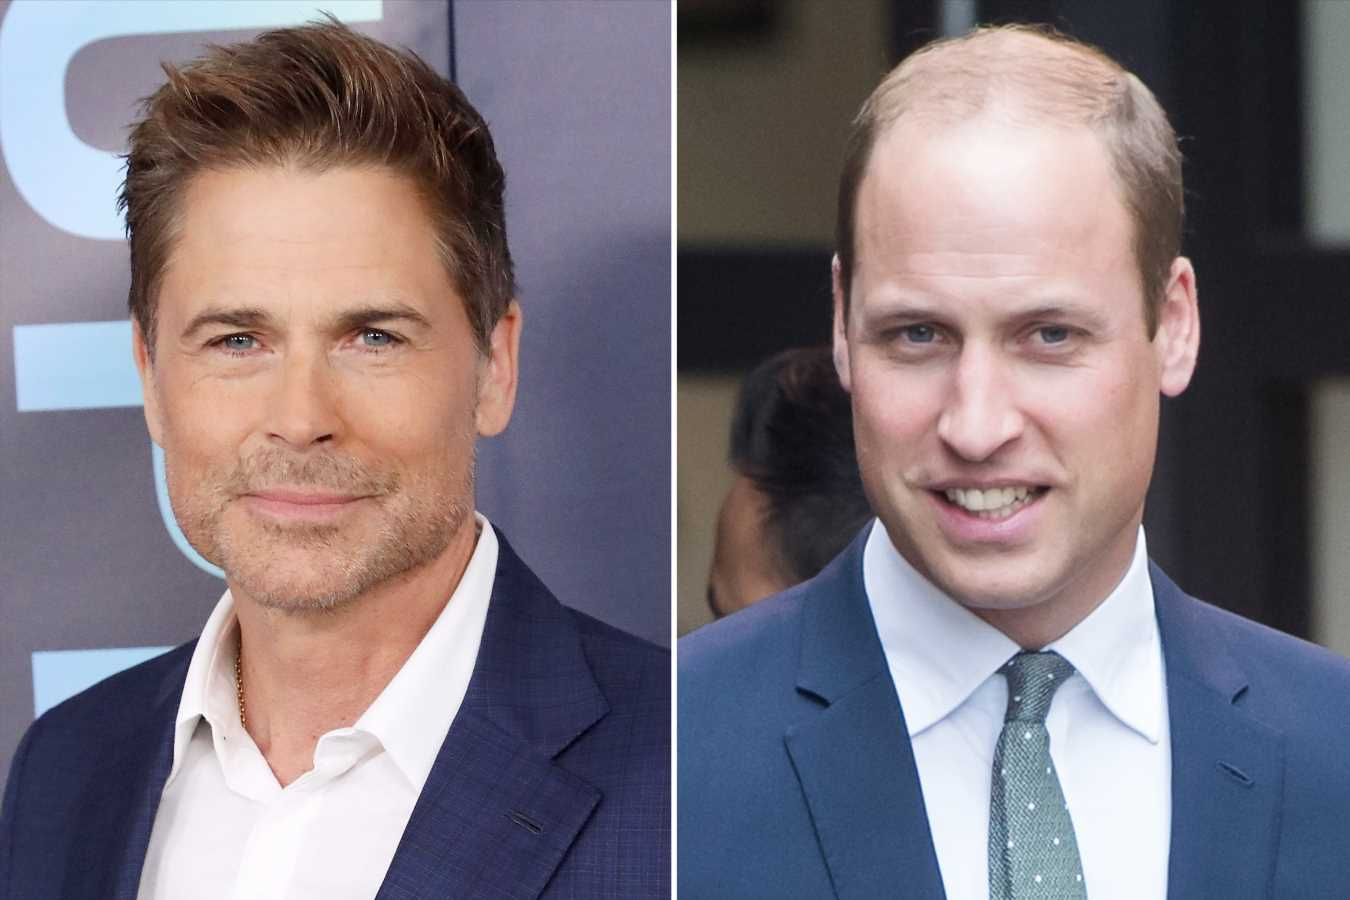 Rob Lowe Says Watching Prince William Lose His Hair Was a 'Traumatic Experience'